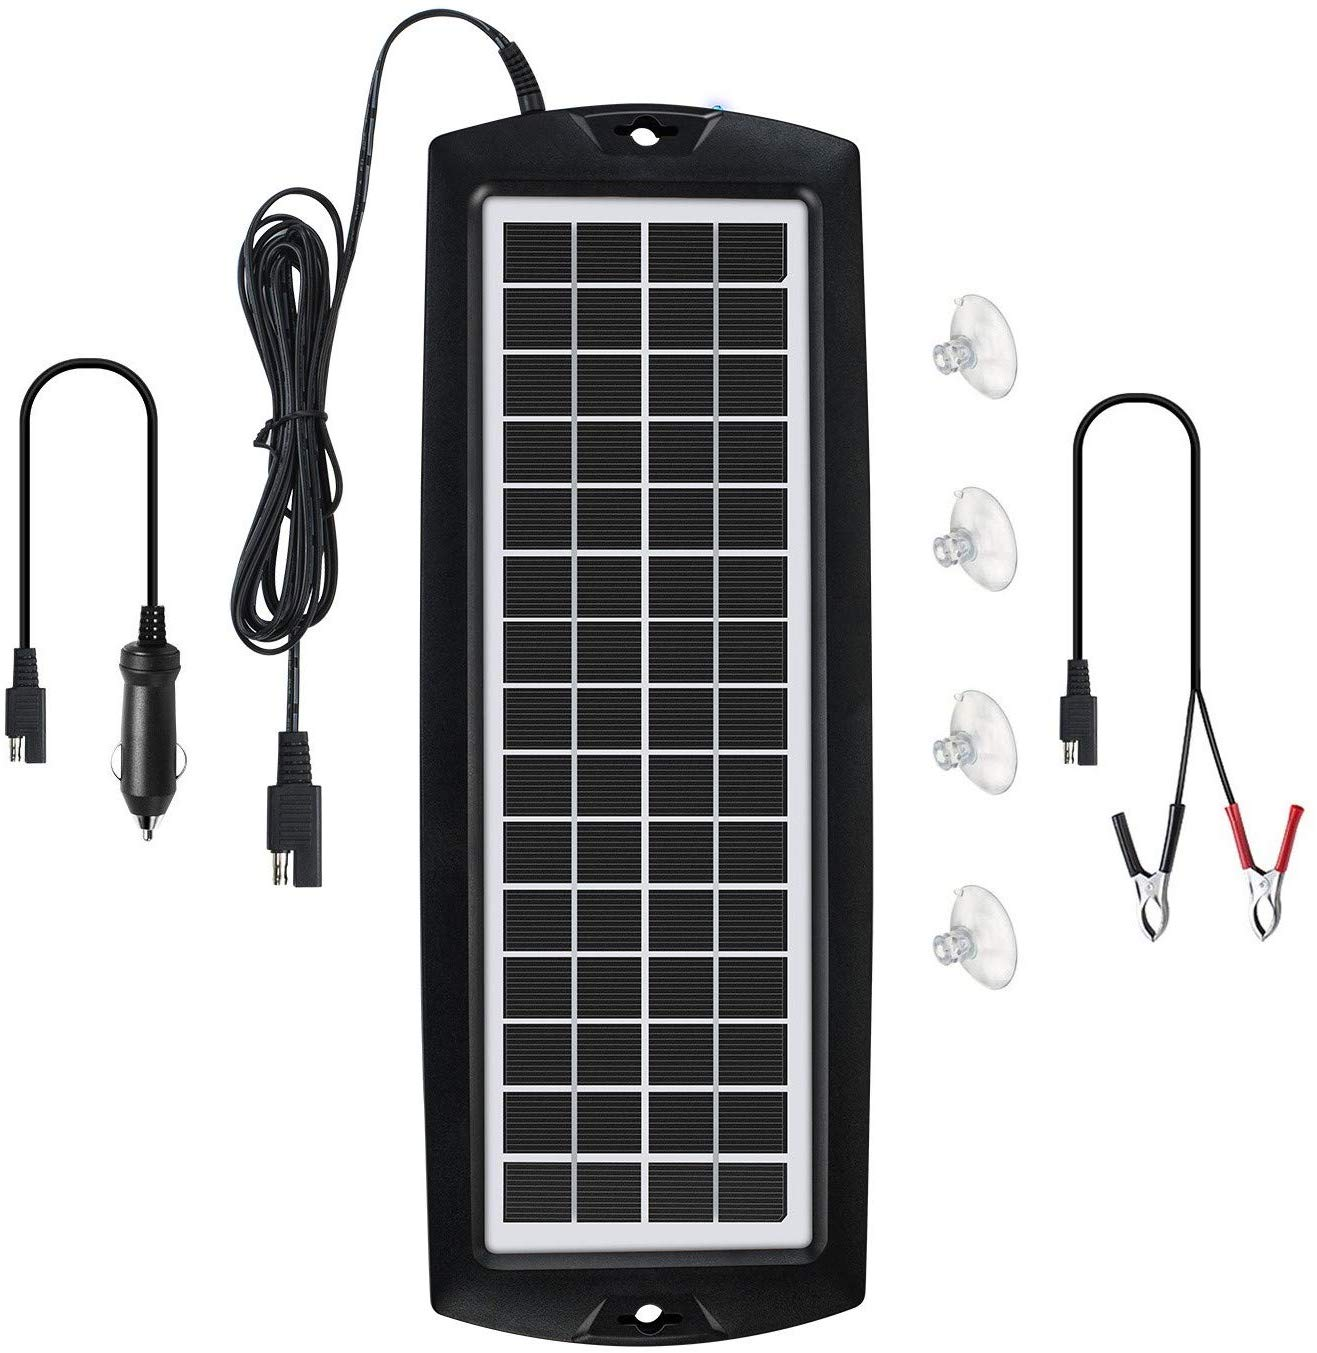 Sunway Solar Car Battery Trickle Charger & Maintainer 5W Solar Panel Power 12V Charger kit Portable Waterproof for Automotive RV Marine Boat Truck Motorcycle Trailer Tractor Powersports Snowmobiles